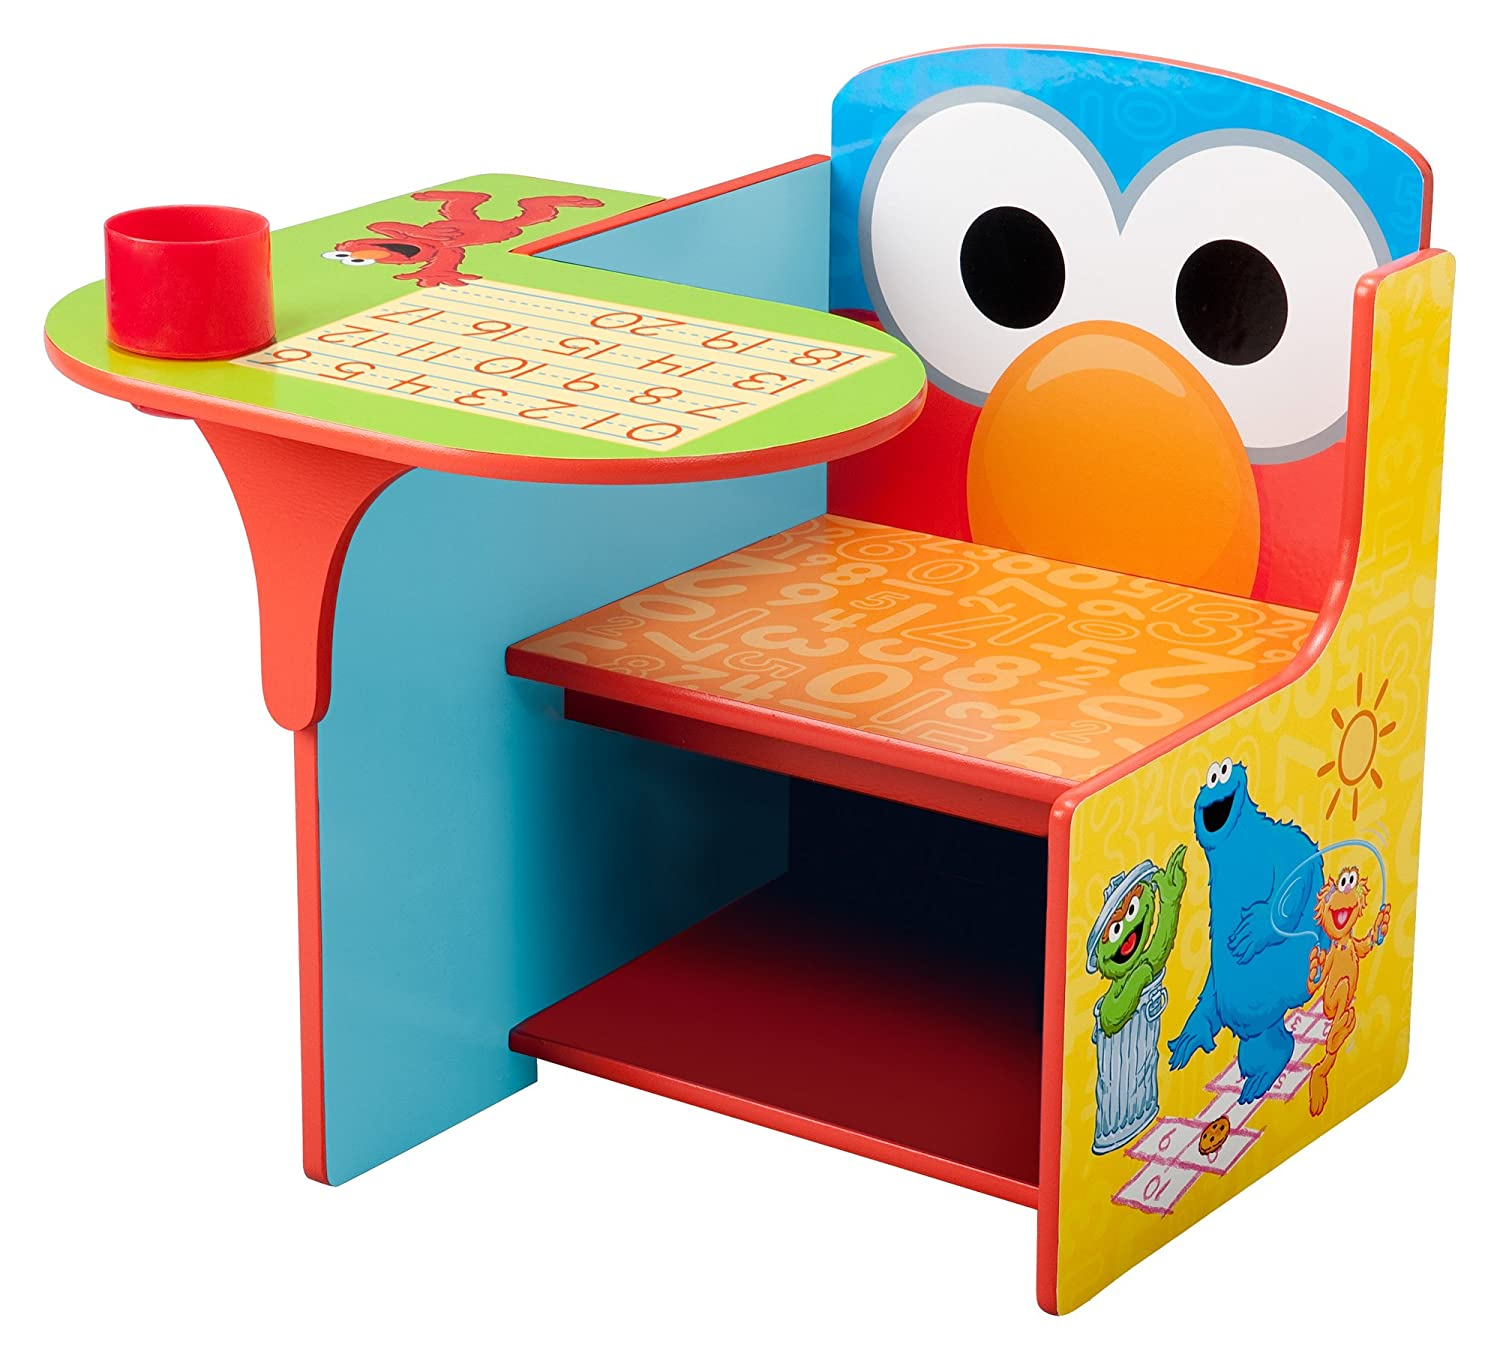 Elegant Amazon.com: Delta Children Chair Desk With Storage Bin, Sesame Street: Baby